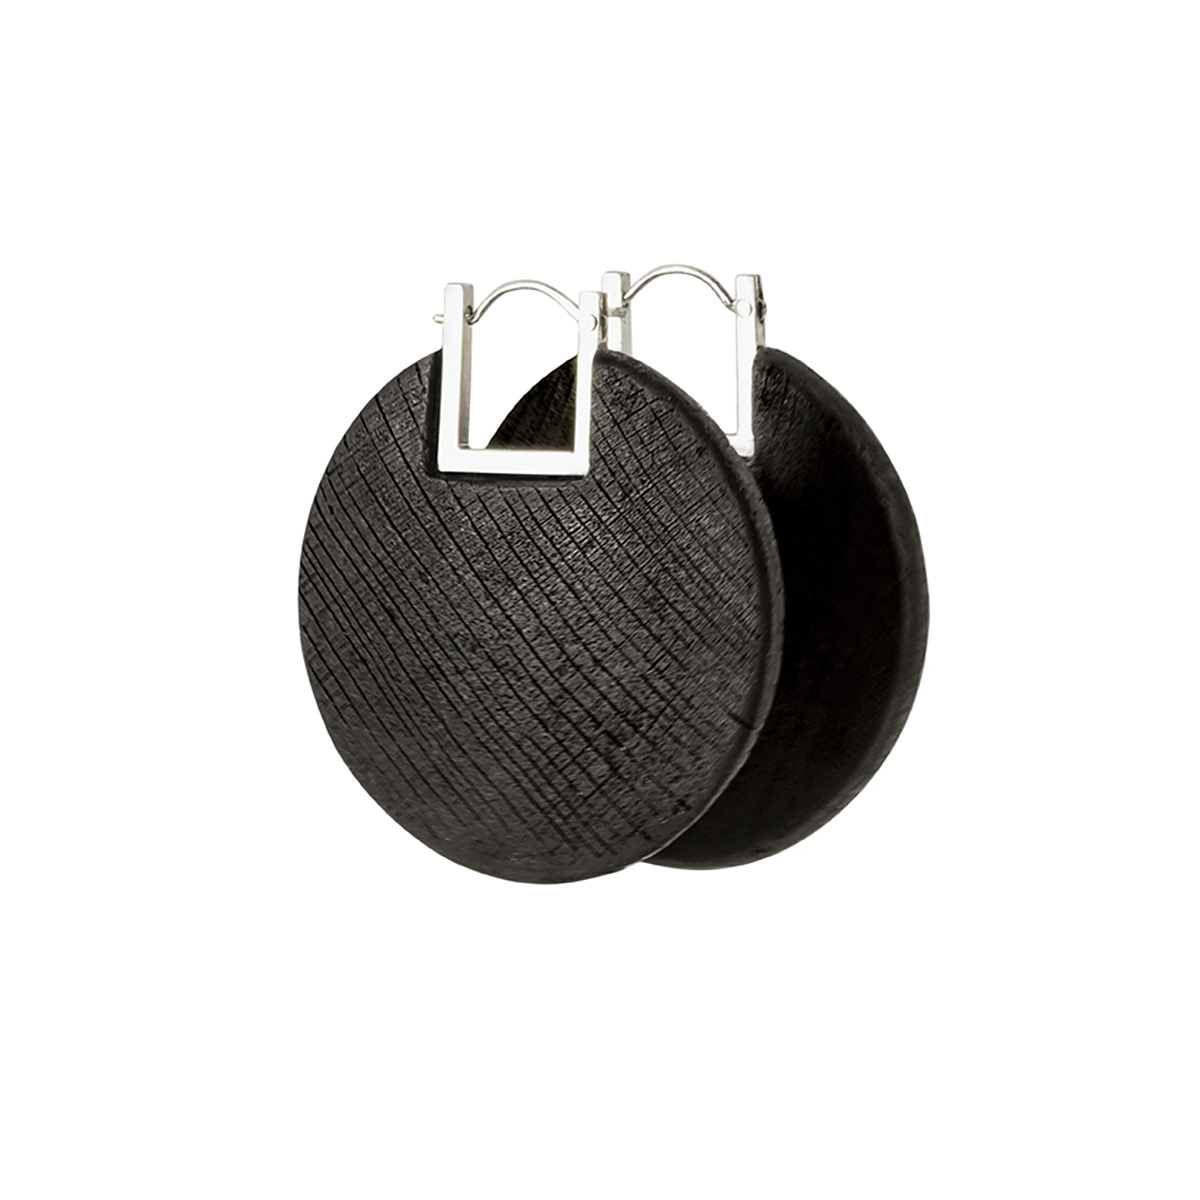 Momentum earrings from the Quantum collection, handcrafted by Julie Bégin using pure sterling silver and hand charred wood.